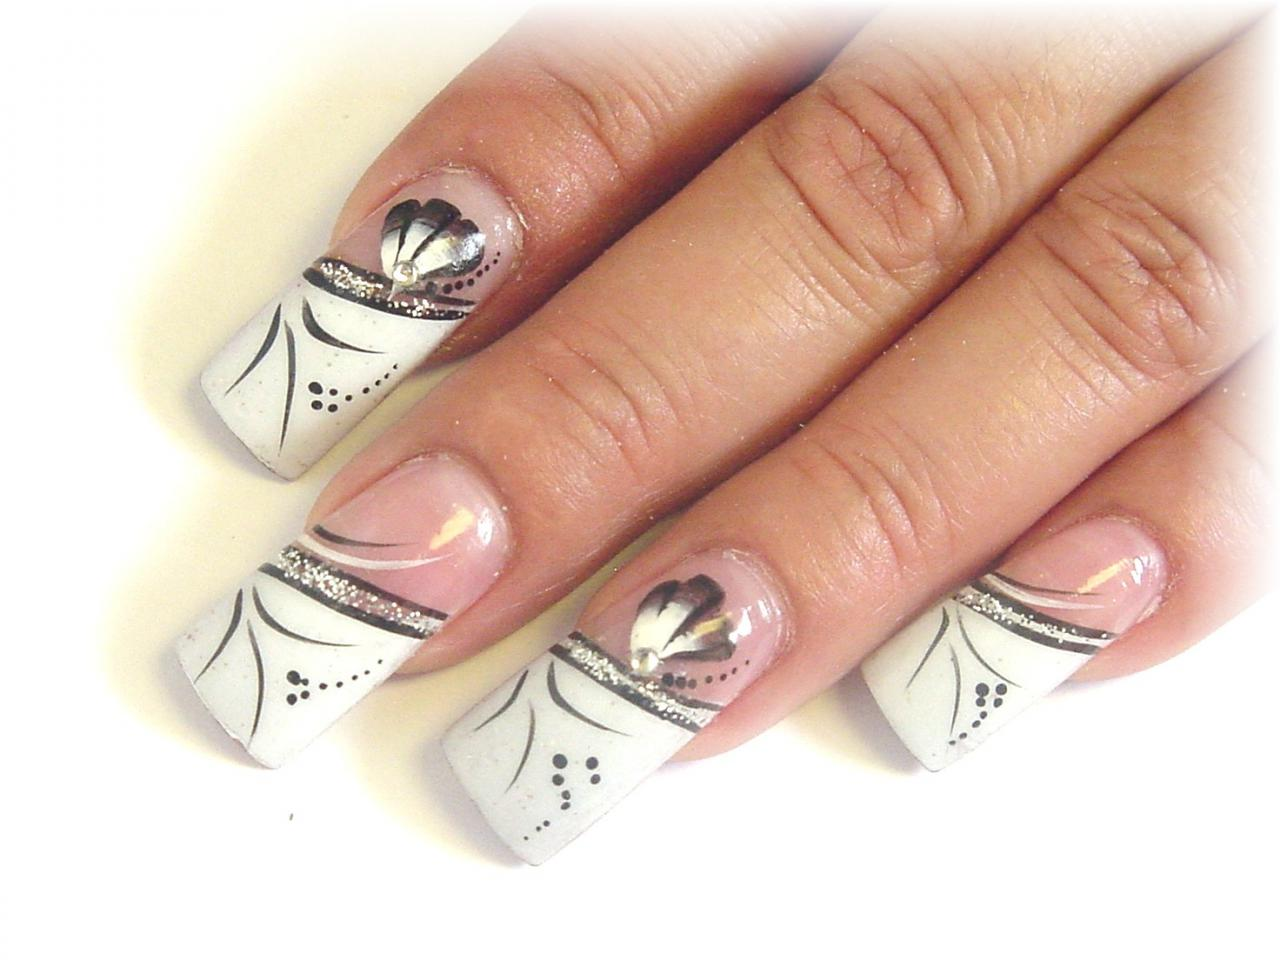 awesome nail art - Nails, Nail Art Wallpaper (23708310) - Fanpop